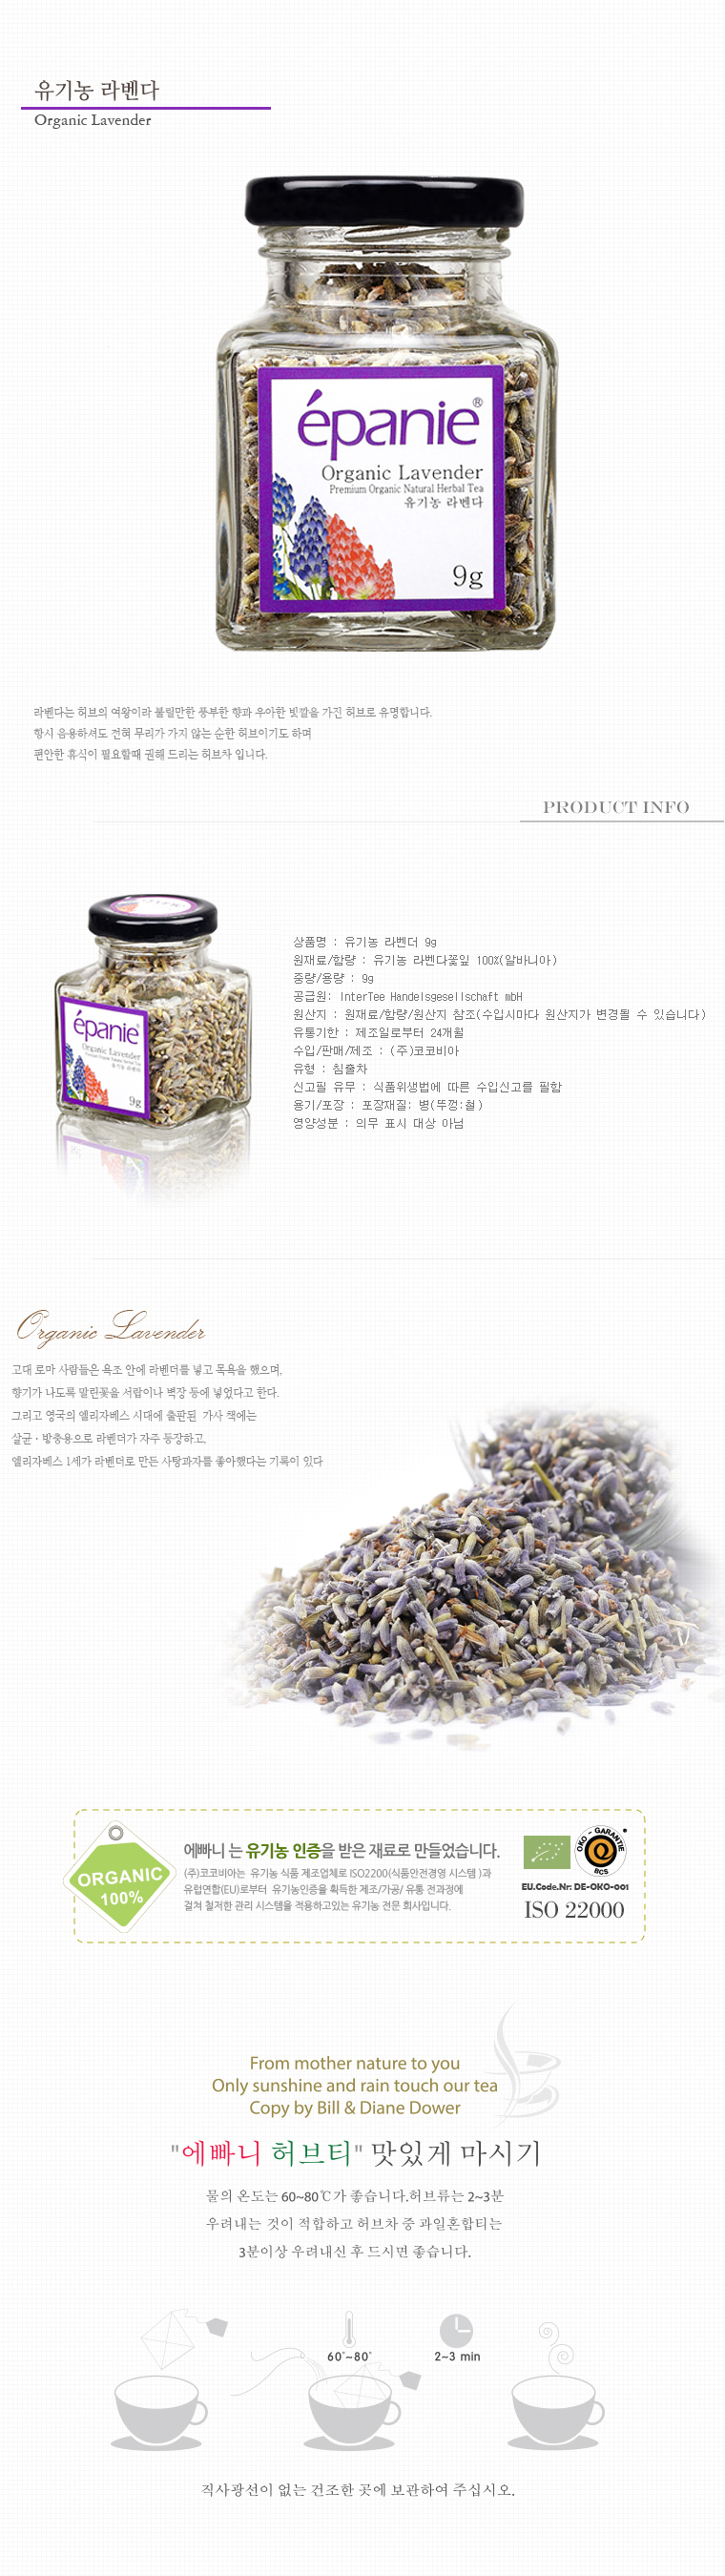 [ 4711 ] D4 Epanie Organic Lavender Herbal Tea- Small Bottle 9g*4